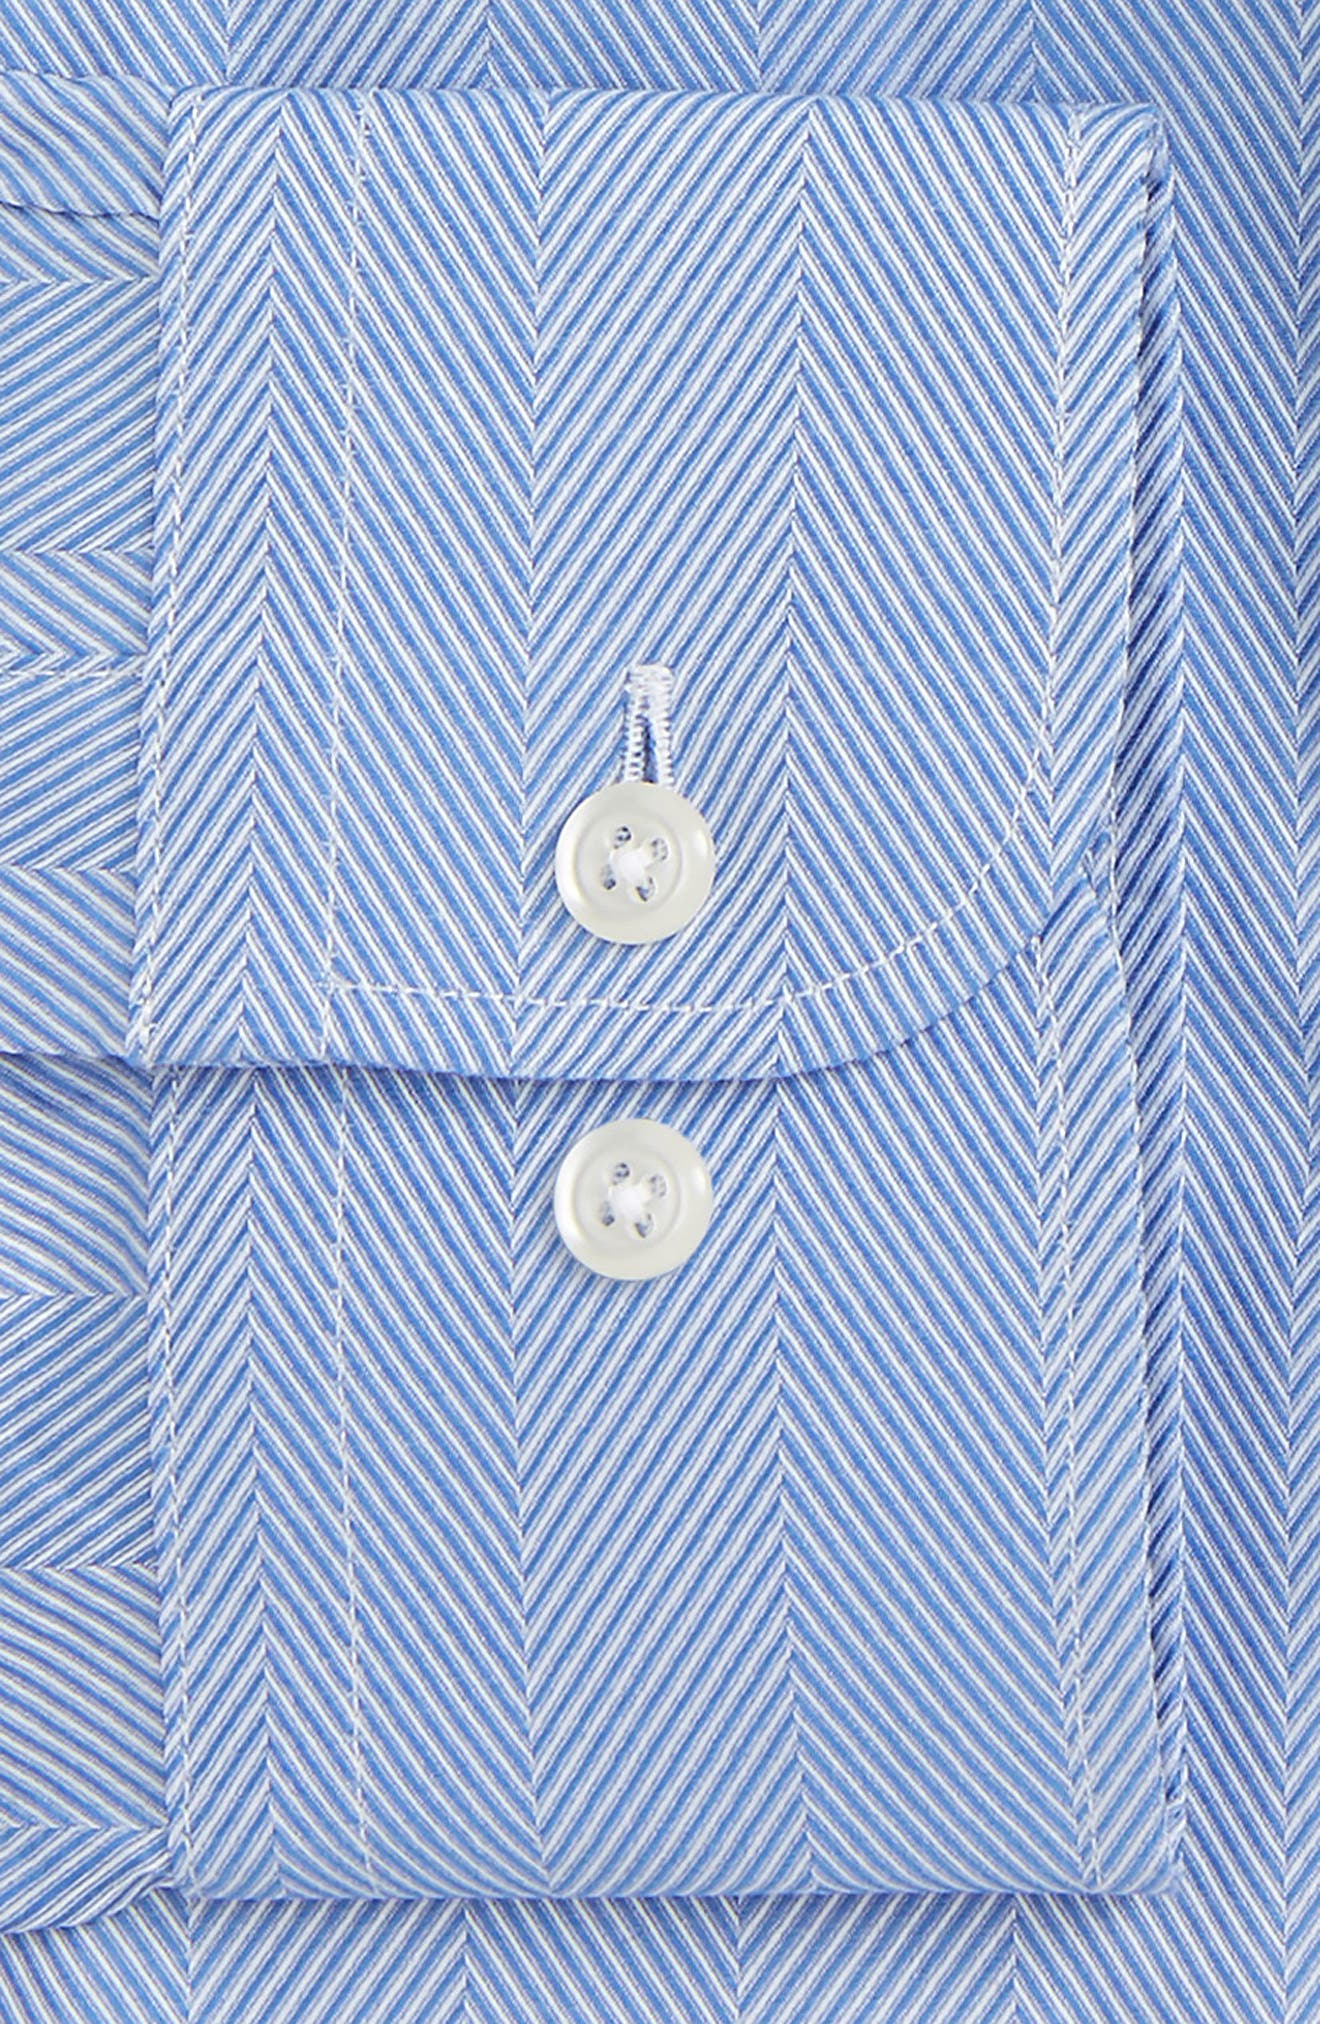 Trim Fit Herringbone Dress Shirt,                             Alternate thumbnail 5, color,                             Blue Provence